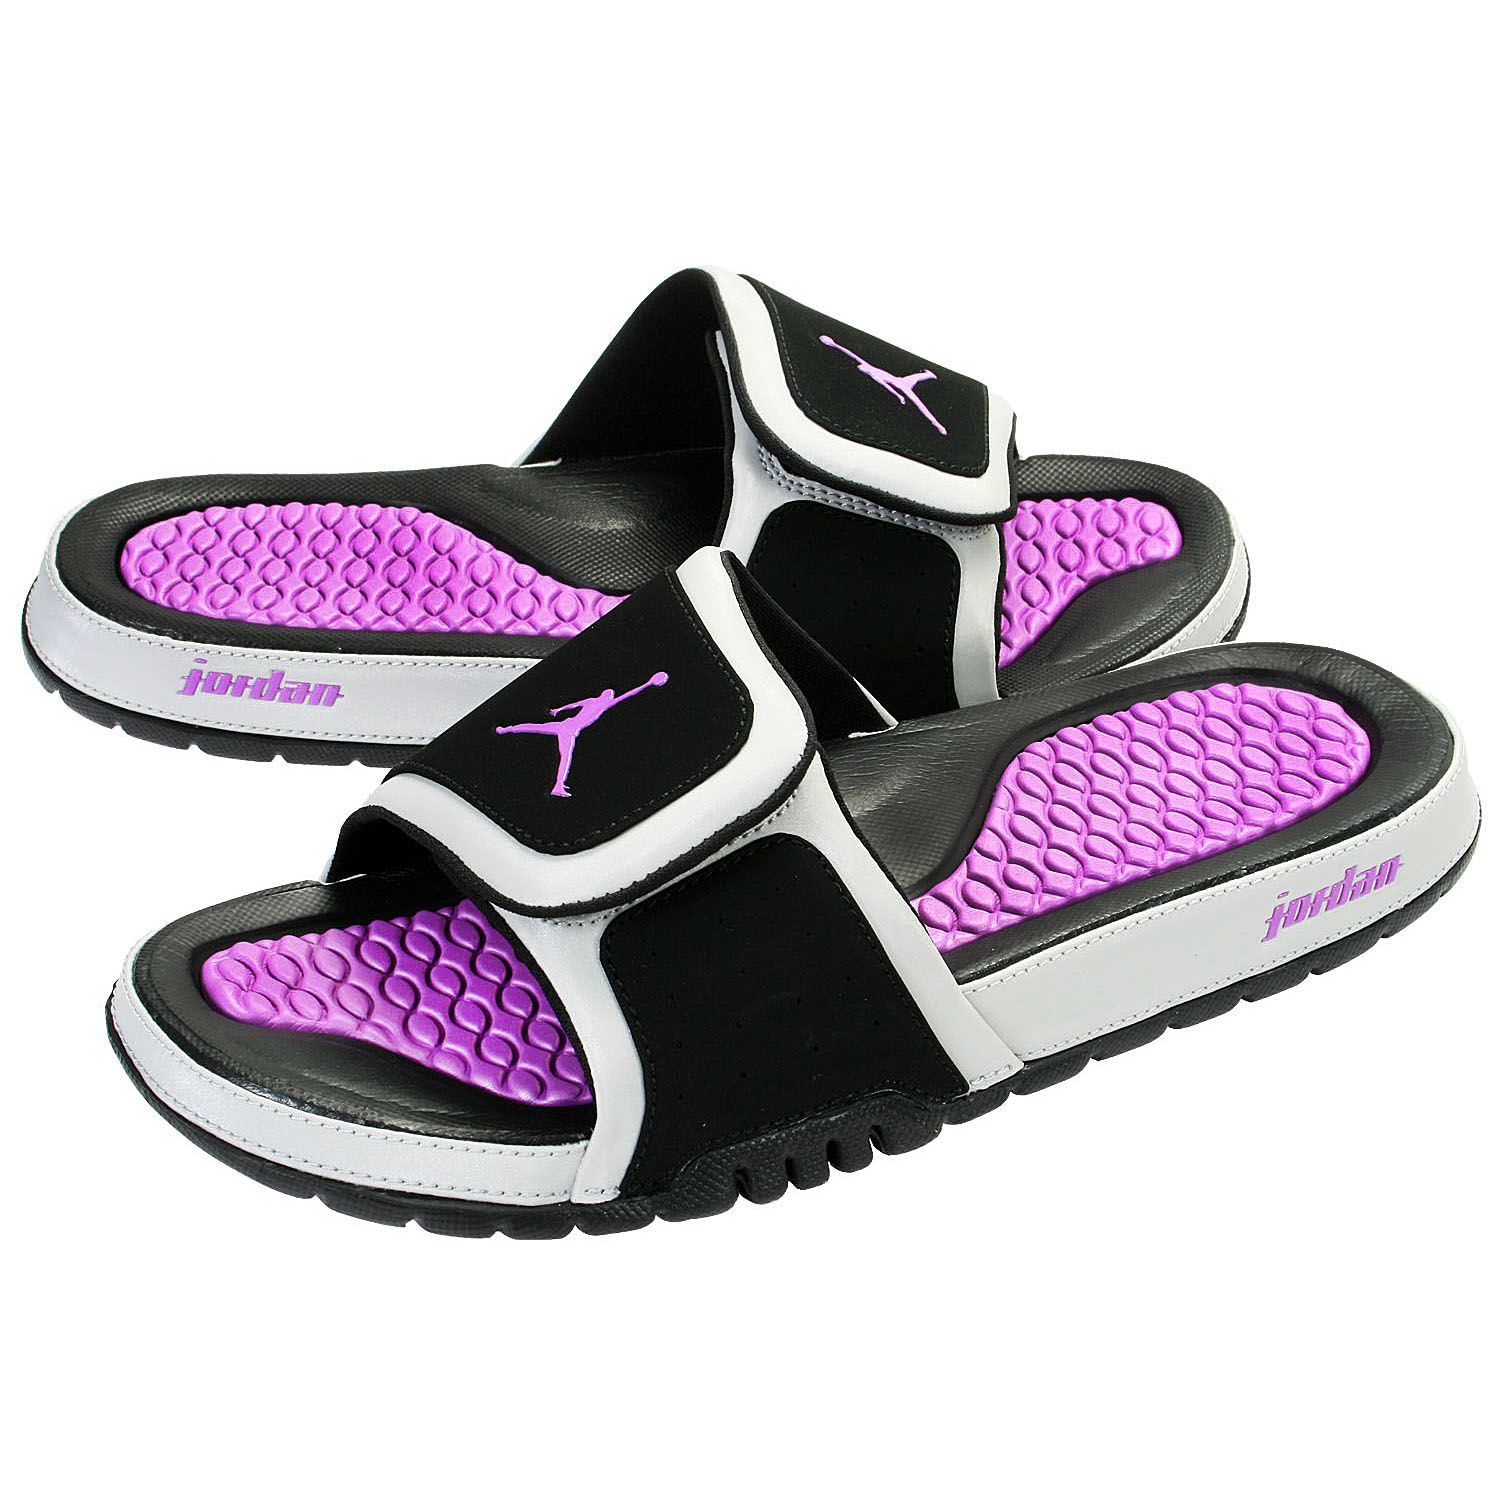 6484686c367 girl jordan slides | NIKE JORDAN HYDRO 2 MENS 312527-026 Sandals Slides  Slippers PINK .